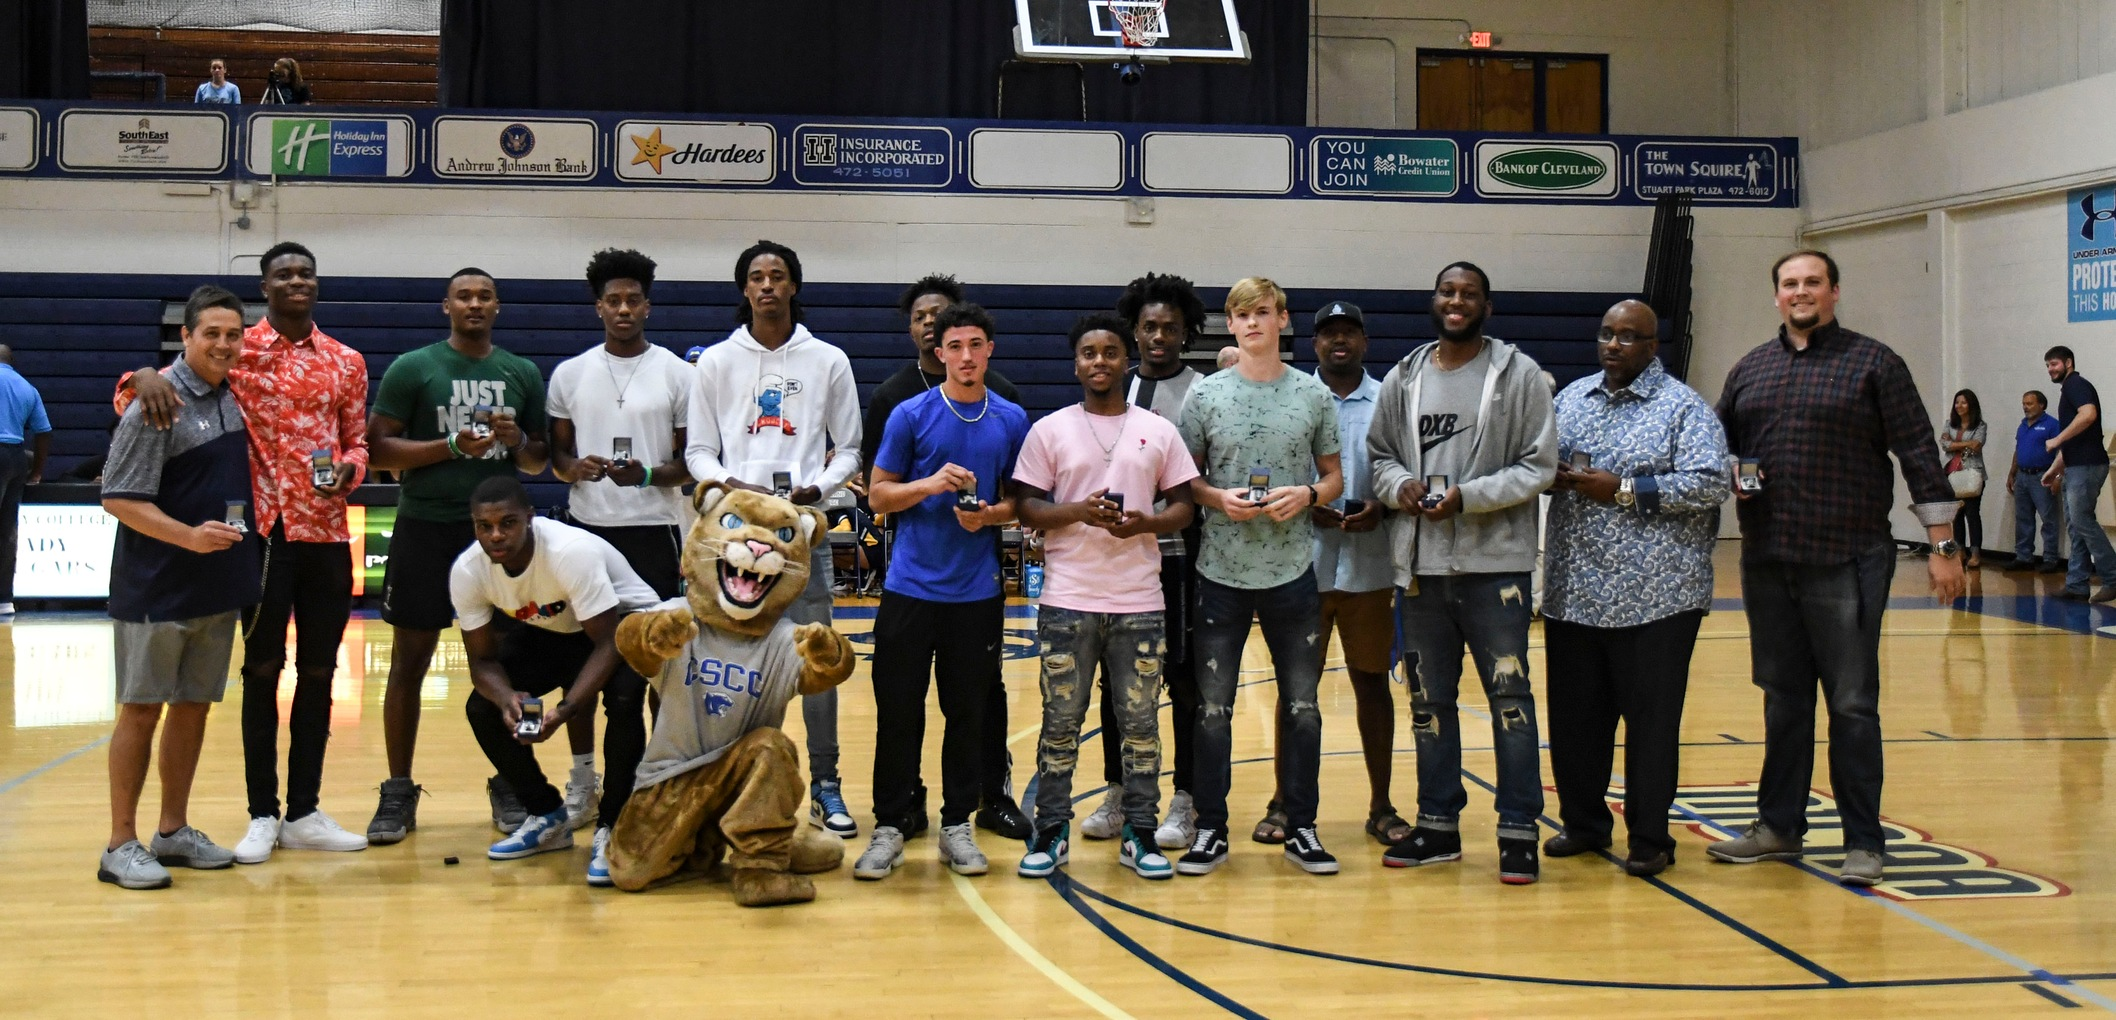 Men's Basketball Distributes Championship Rings In Special Ceremony